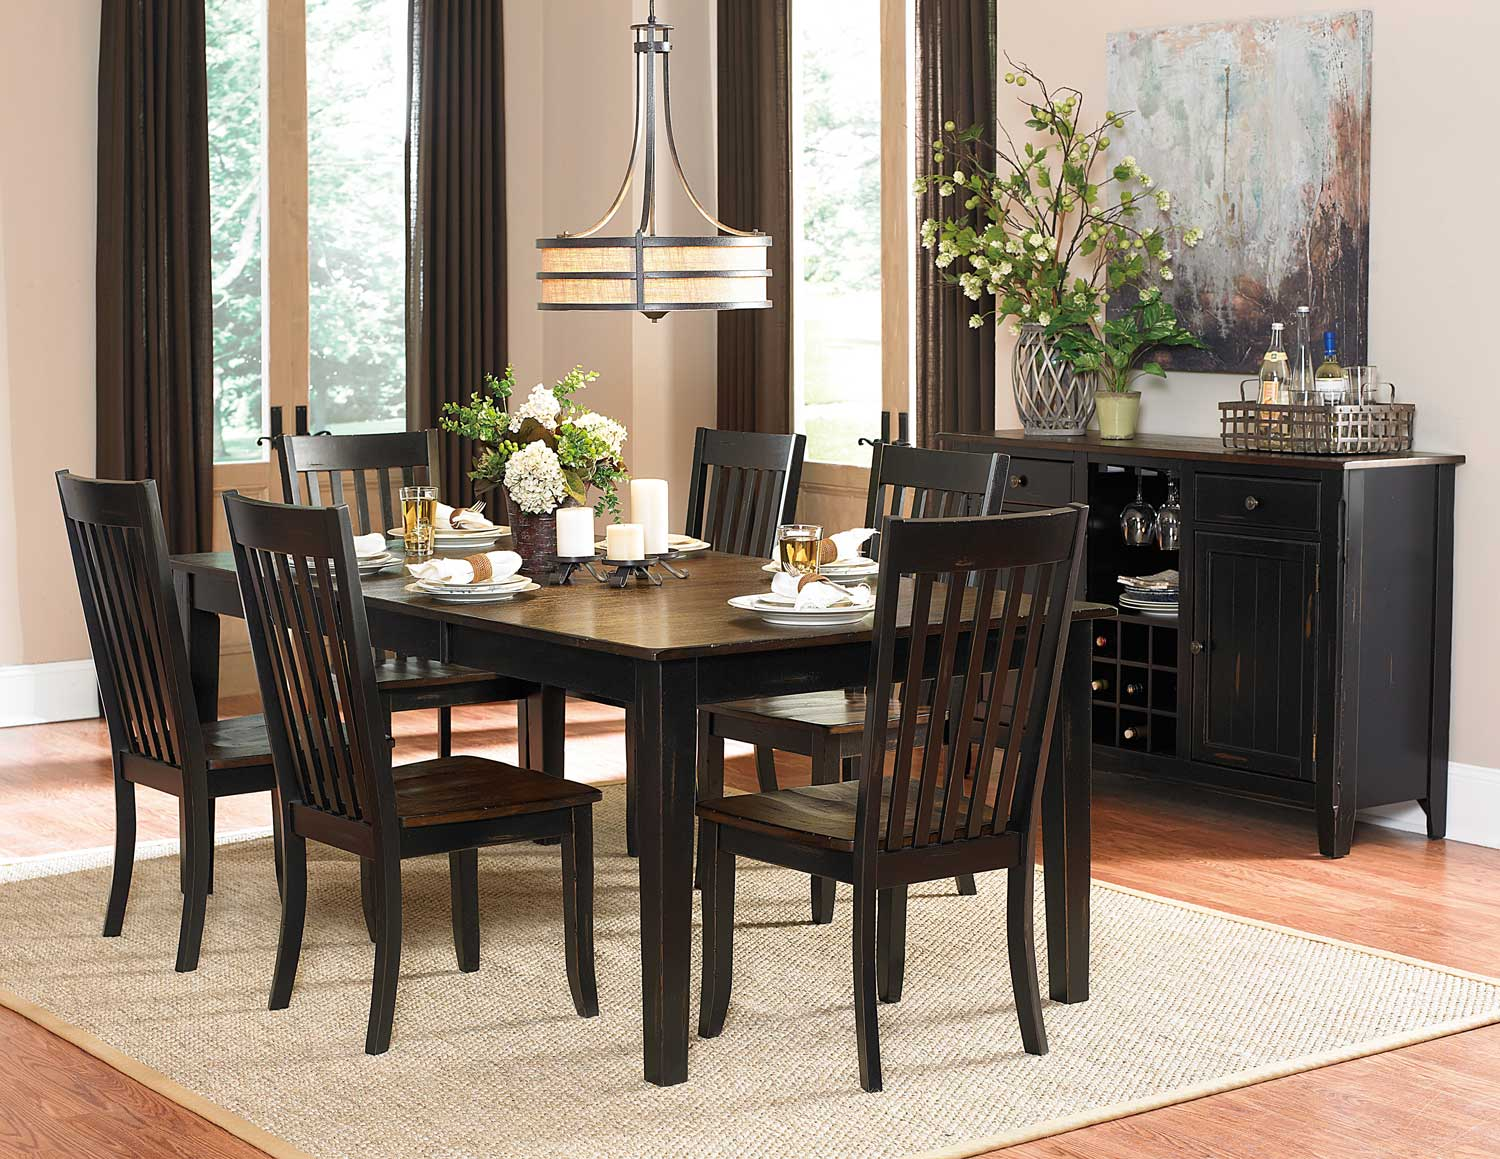 Homelegance Three Falls Rectangular Dining Set   Two Tone Dark Brown/Black  Sand